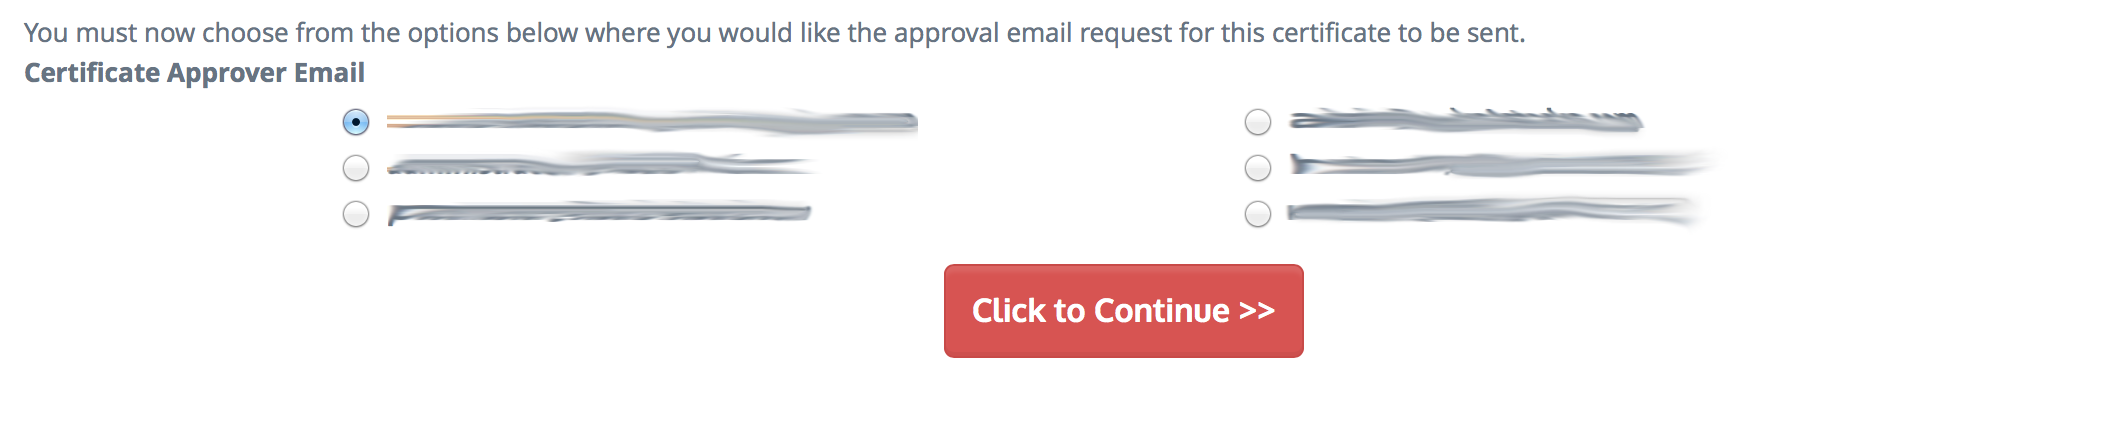 Choosing an admin email to approve the certificate